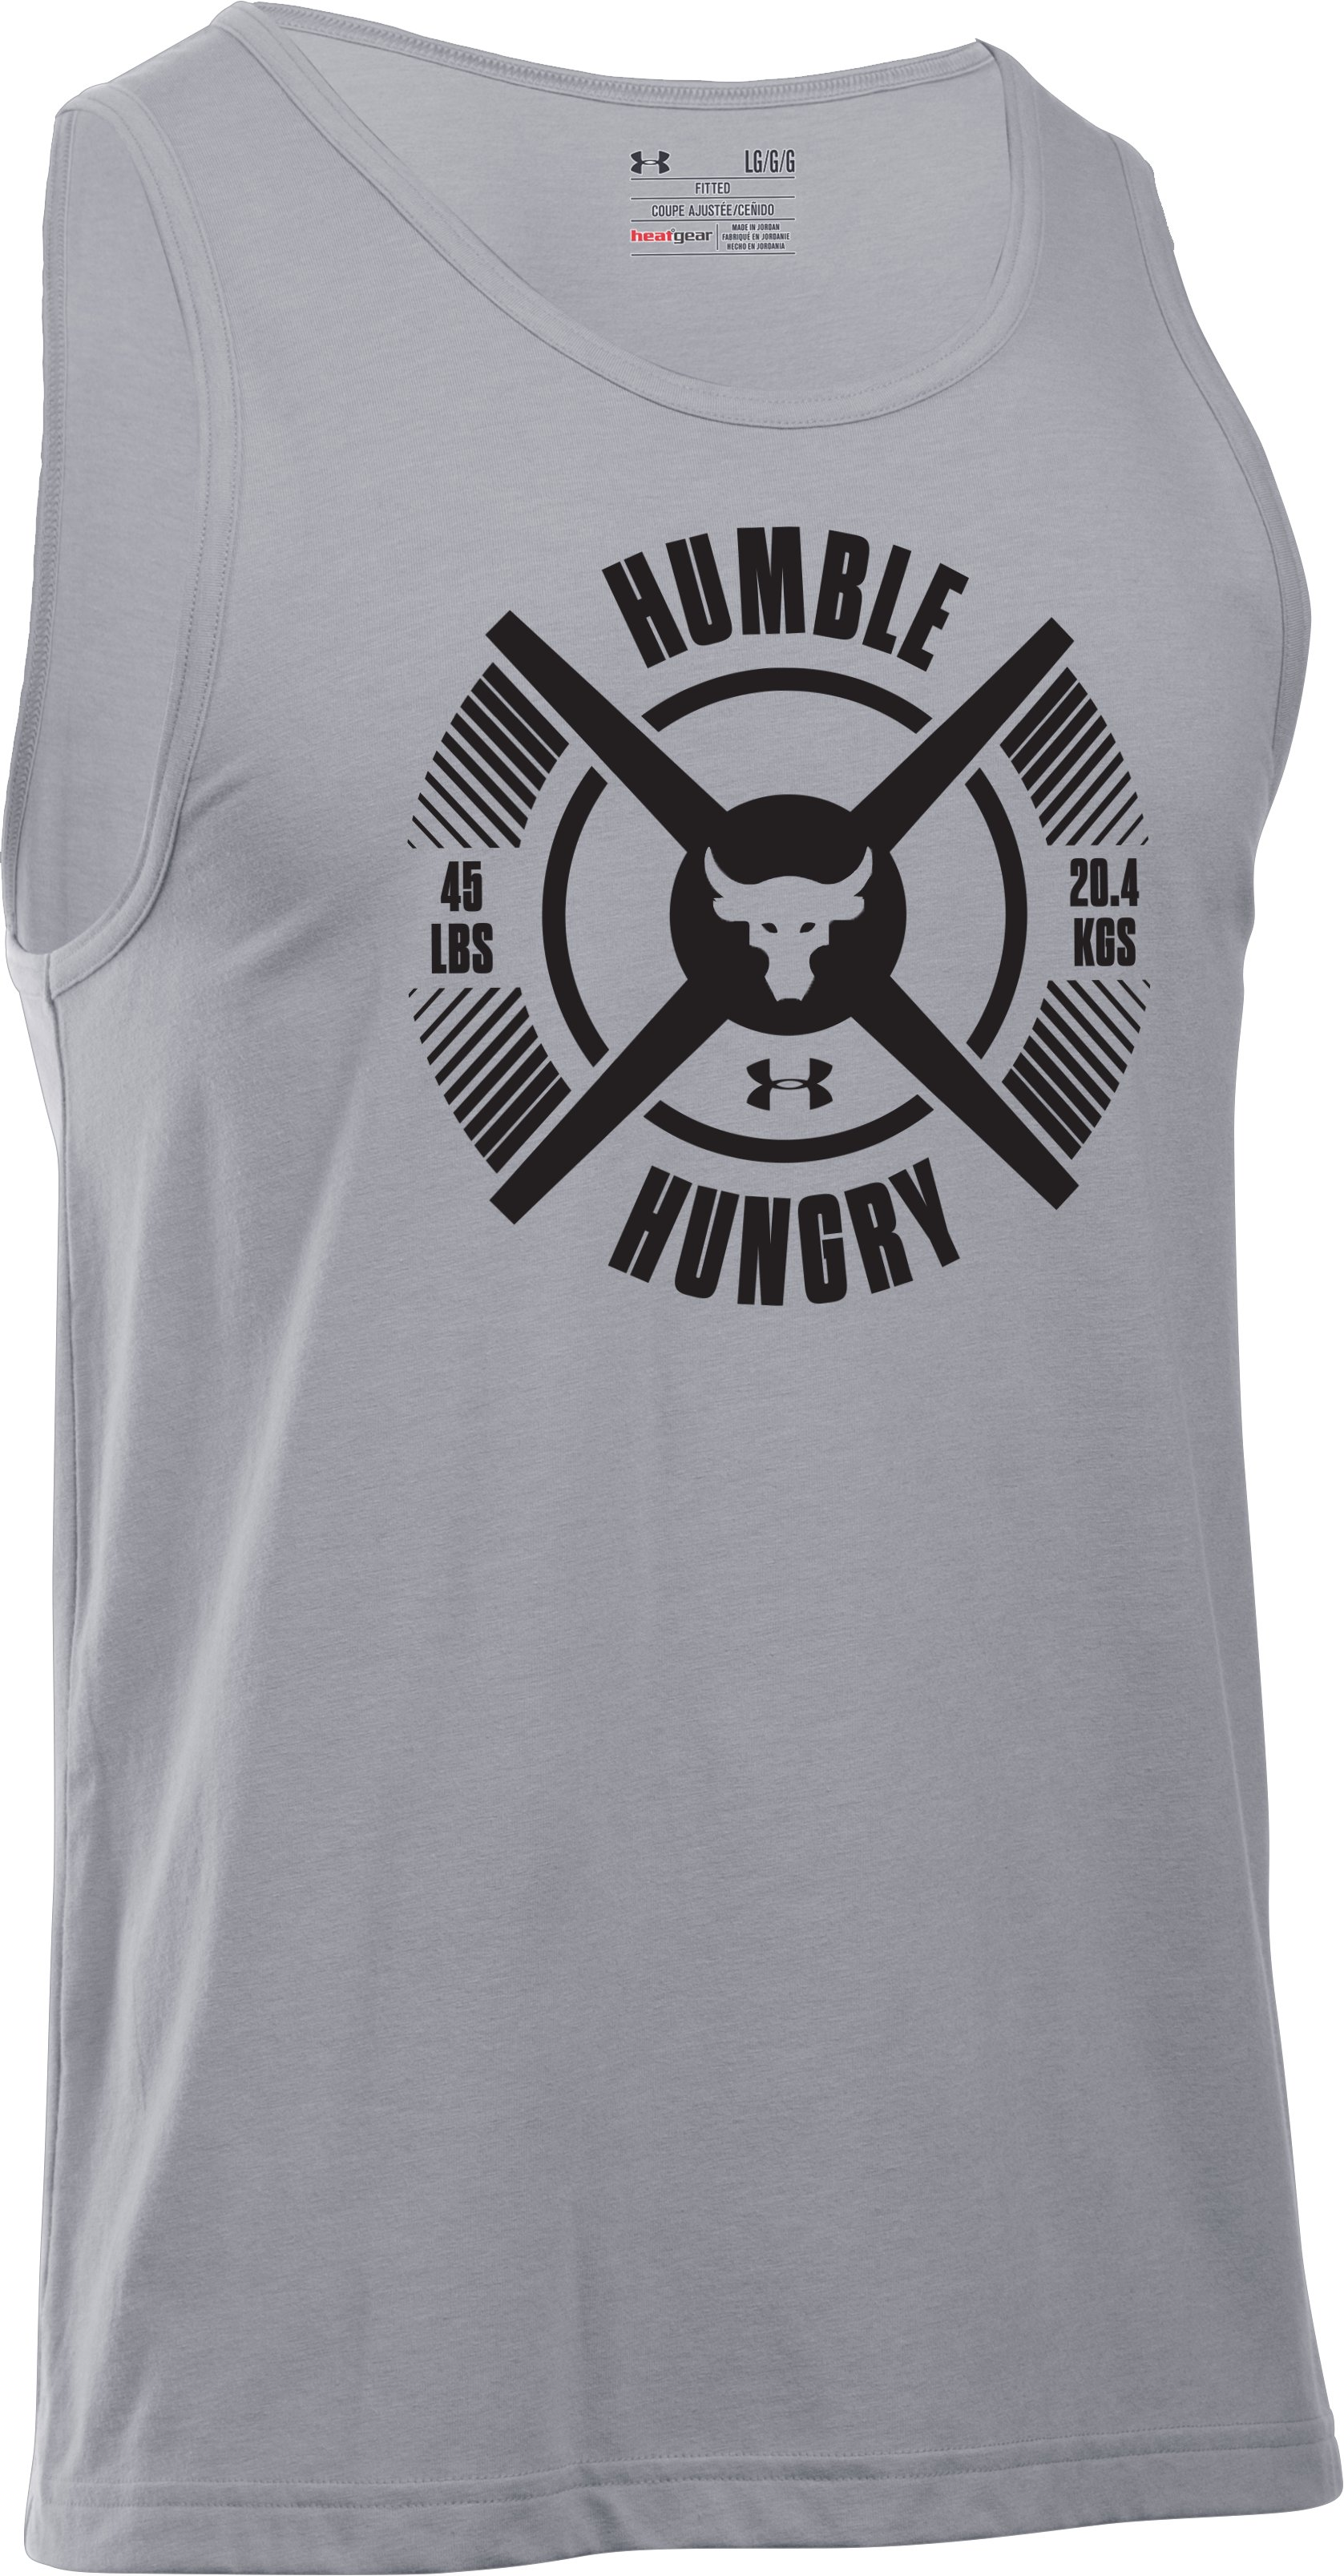 Men's UA x Project Rock Hungry Tank, STEEL LIGHT HEATHER, undefined